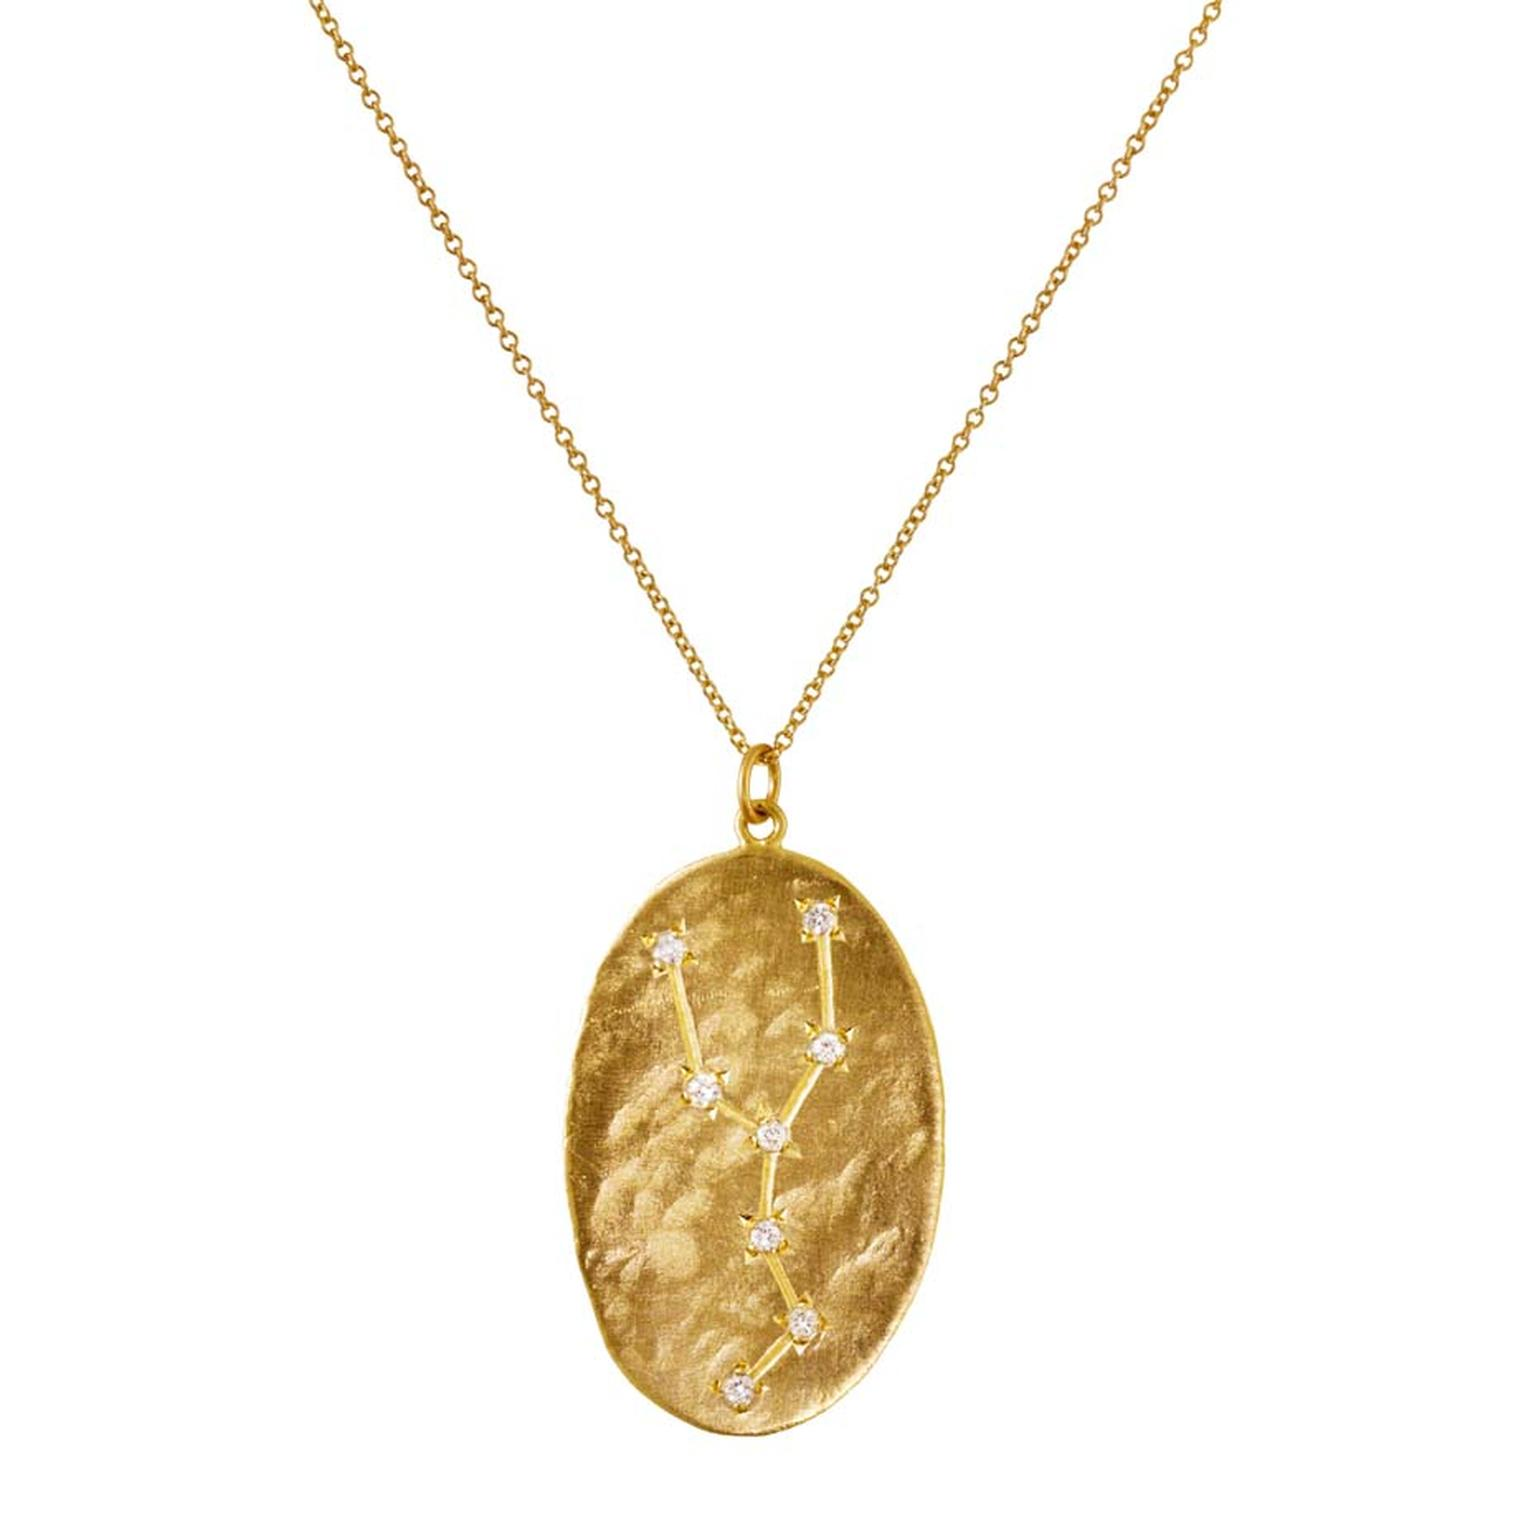 Yellow Gold And Diamond Taurus Pendant Necklace From Brooke Gregson S Astrology Collection 2 060